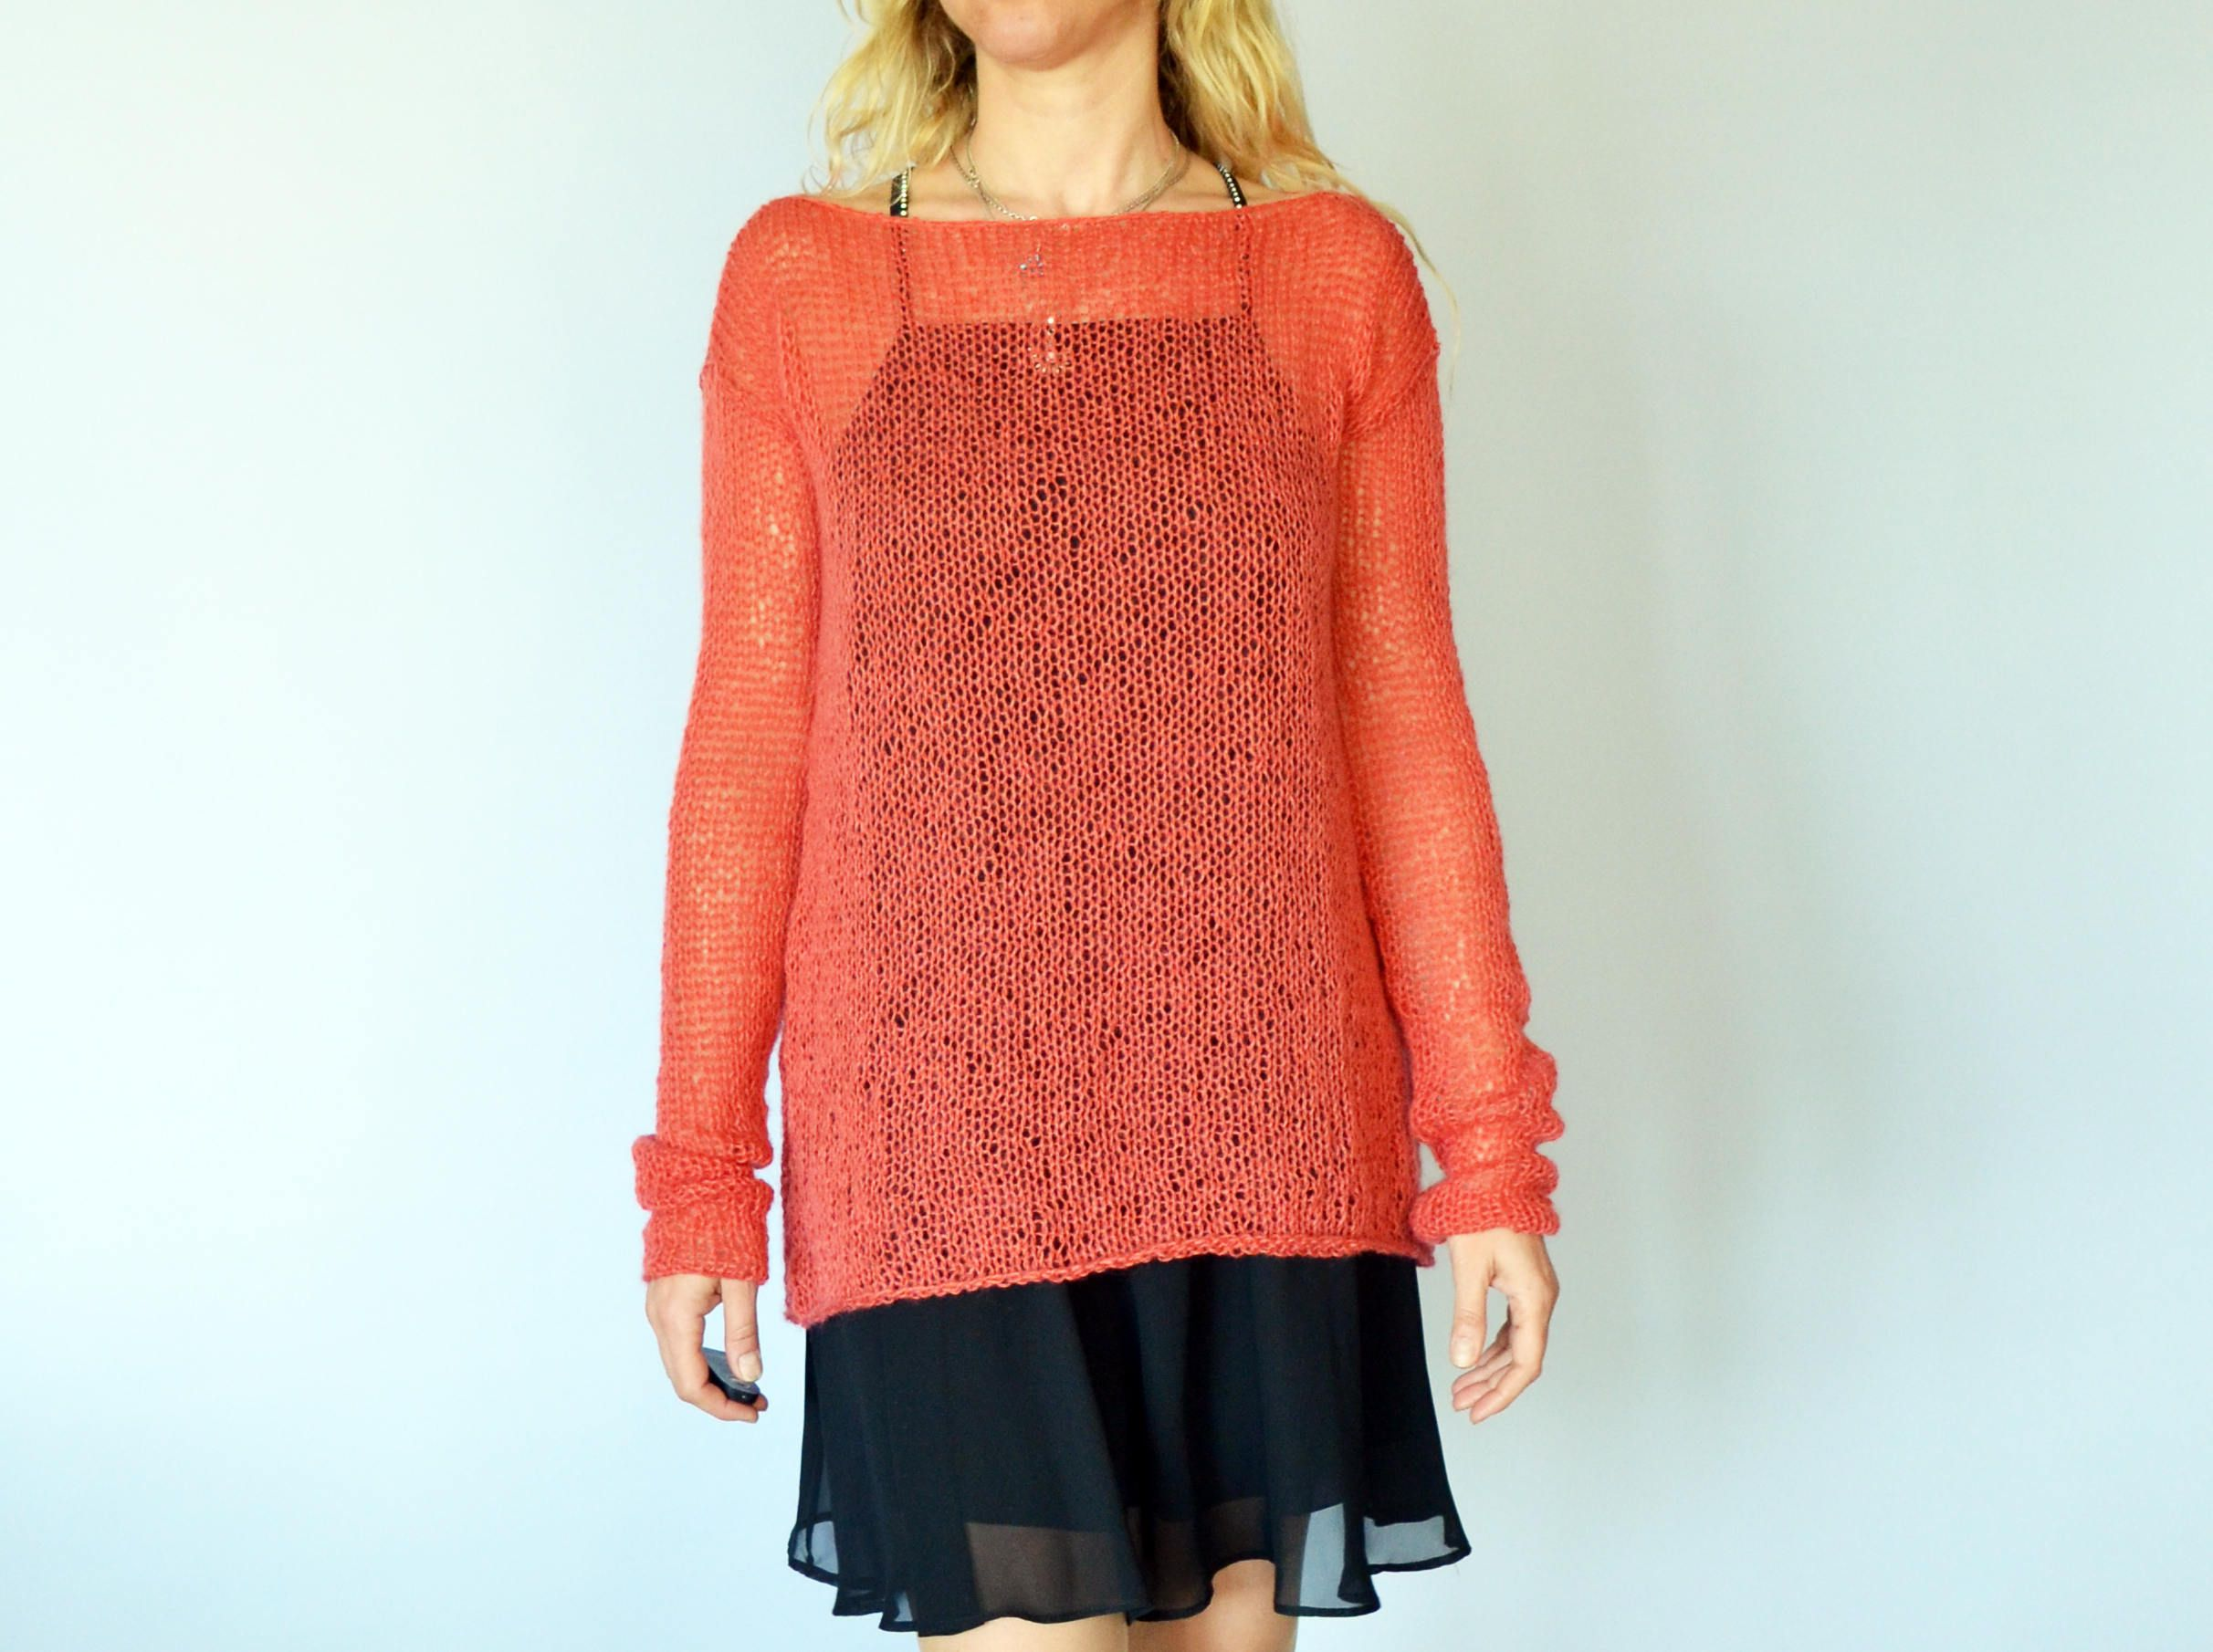 e42287df68d Coral Red Boat Neck Mohair Sweater Sheer Blouse Knit Tunic by MyAqua ...